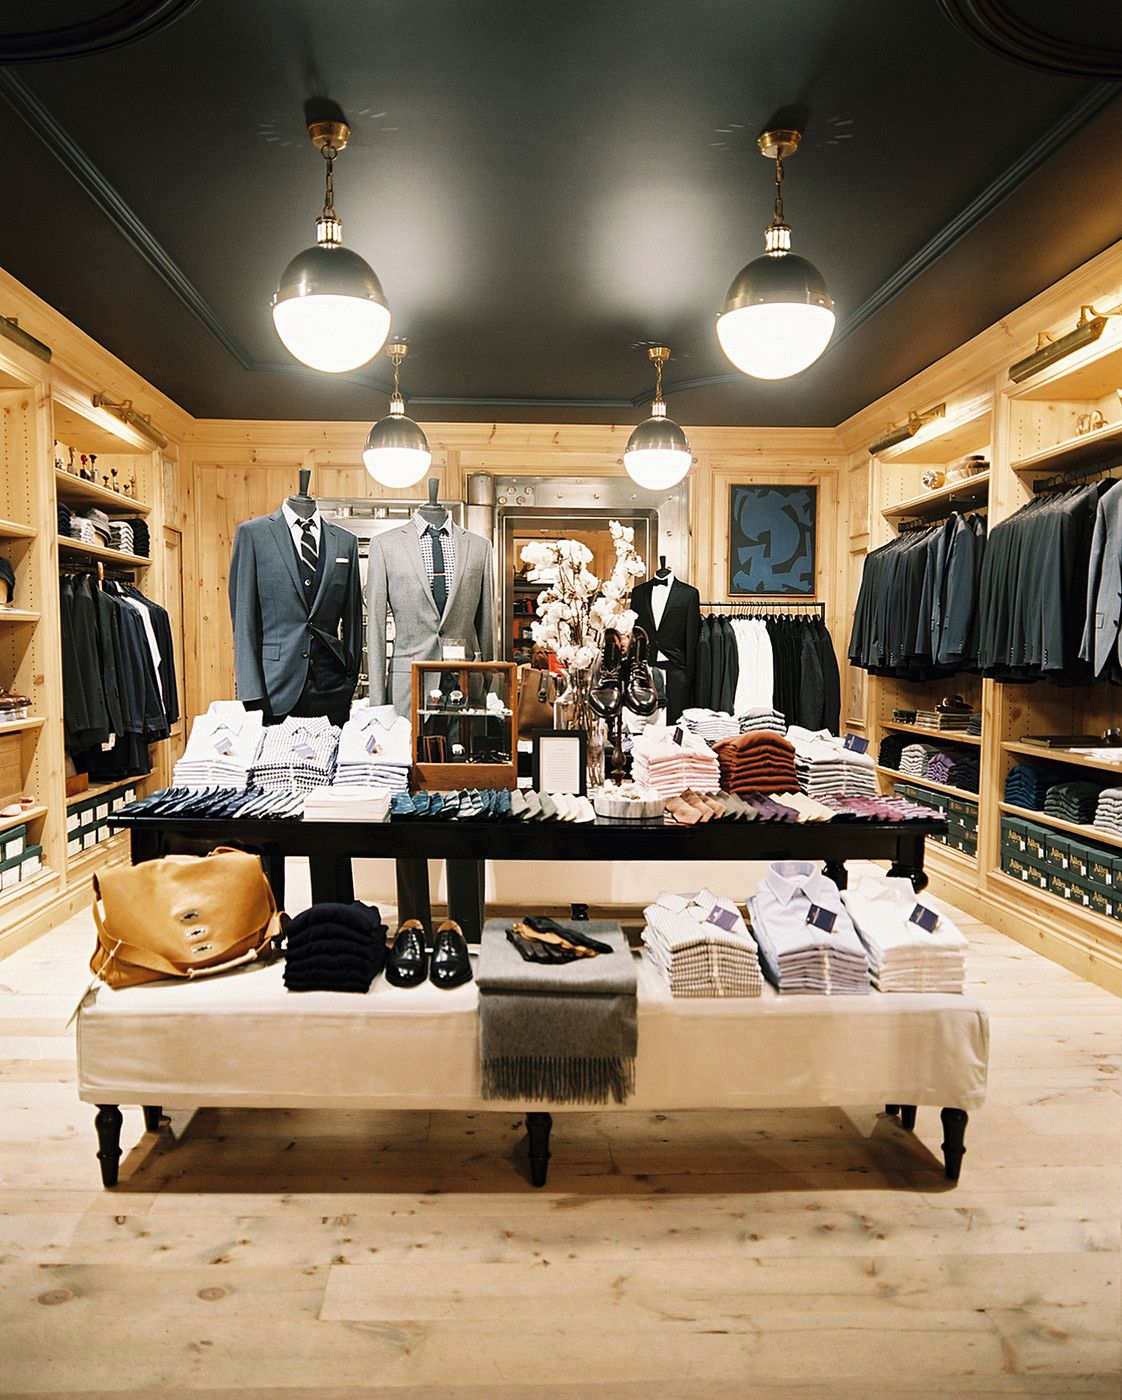 Rustic traditional retail store design clothing on display at the j crew mens shop